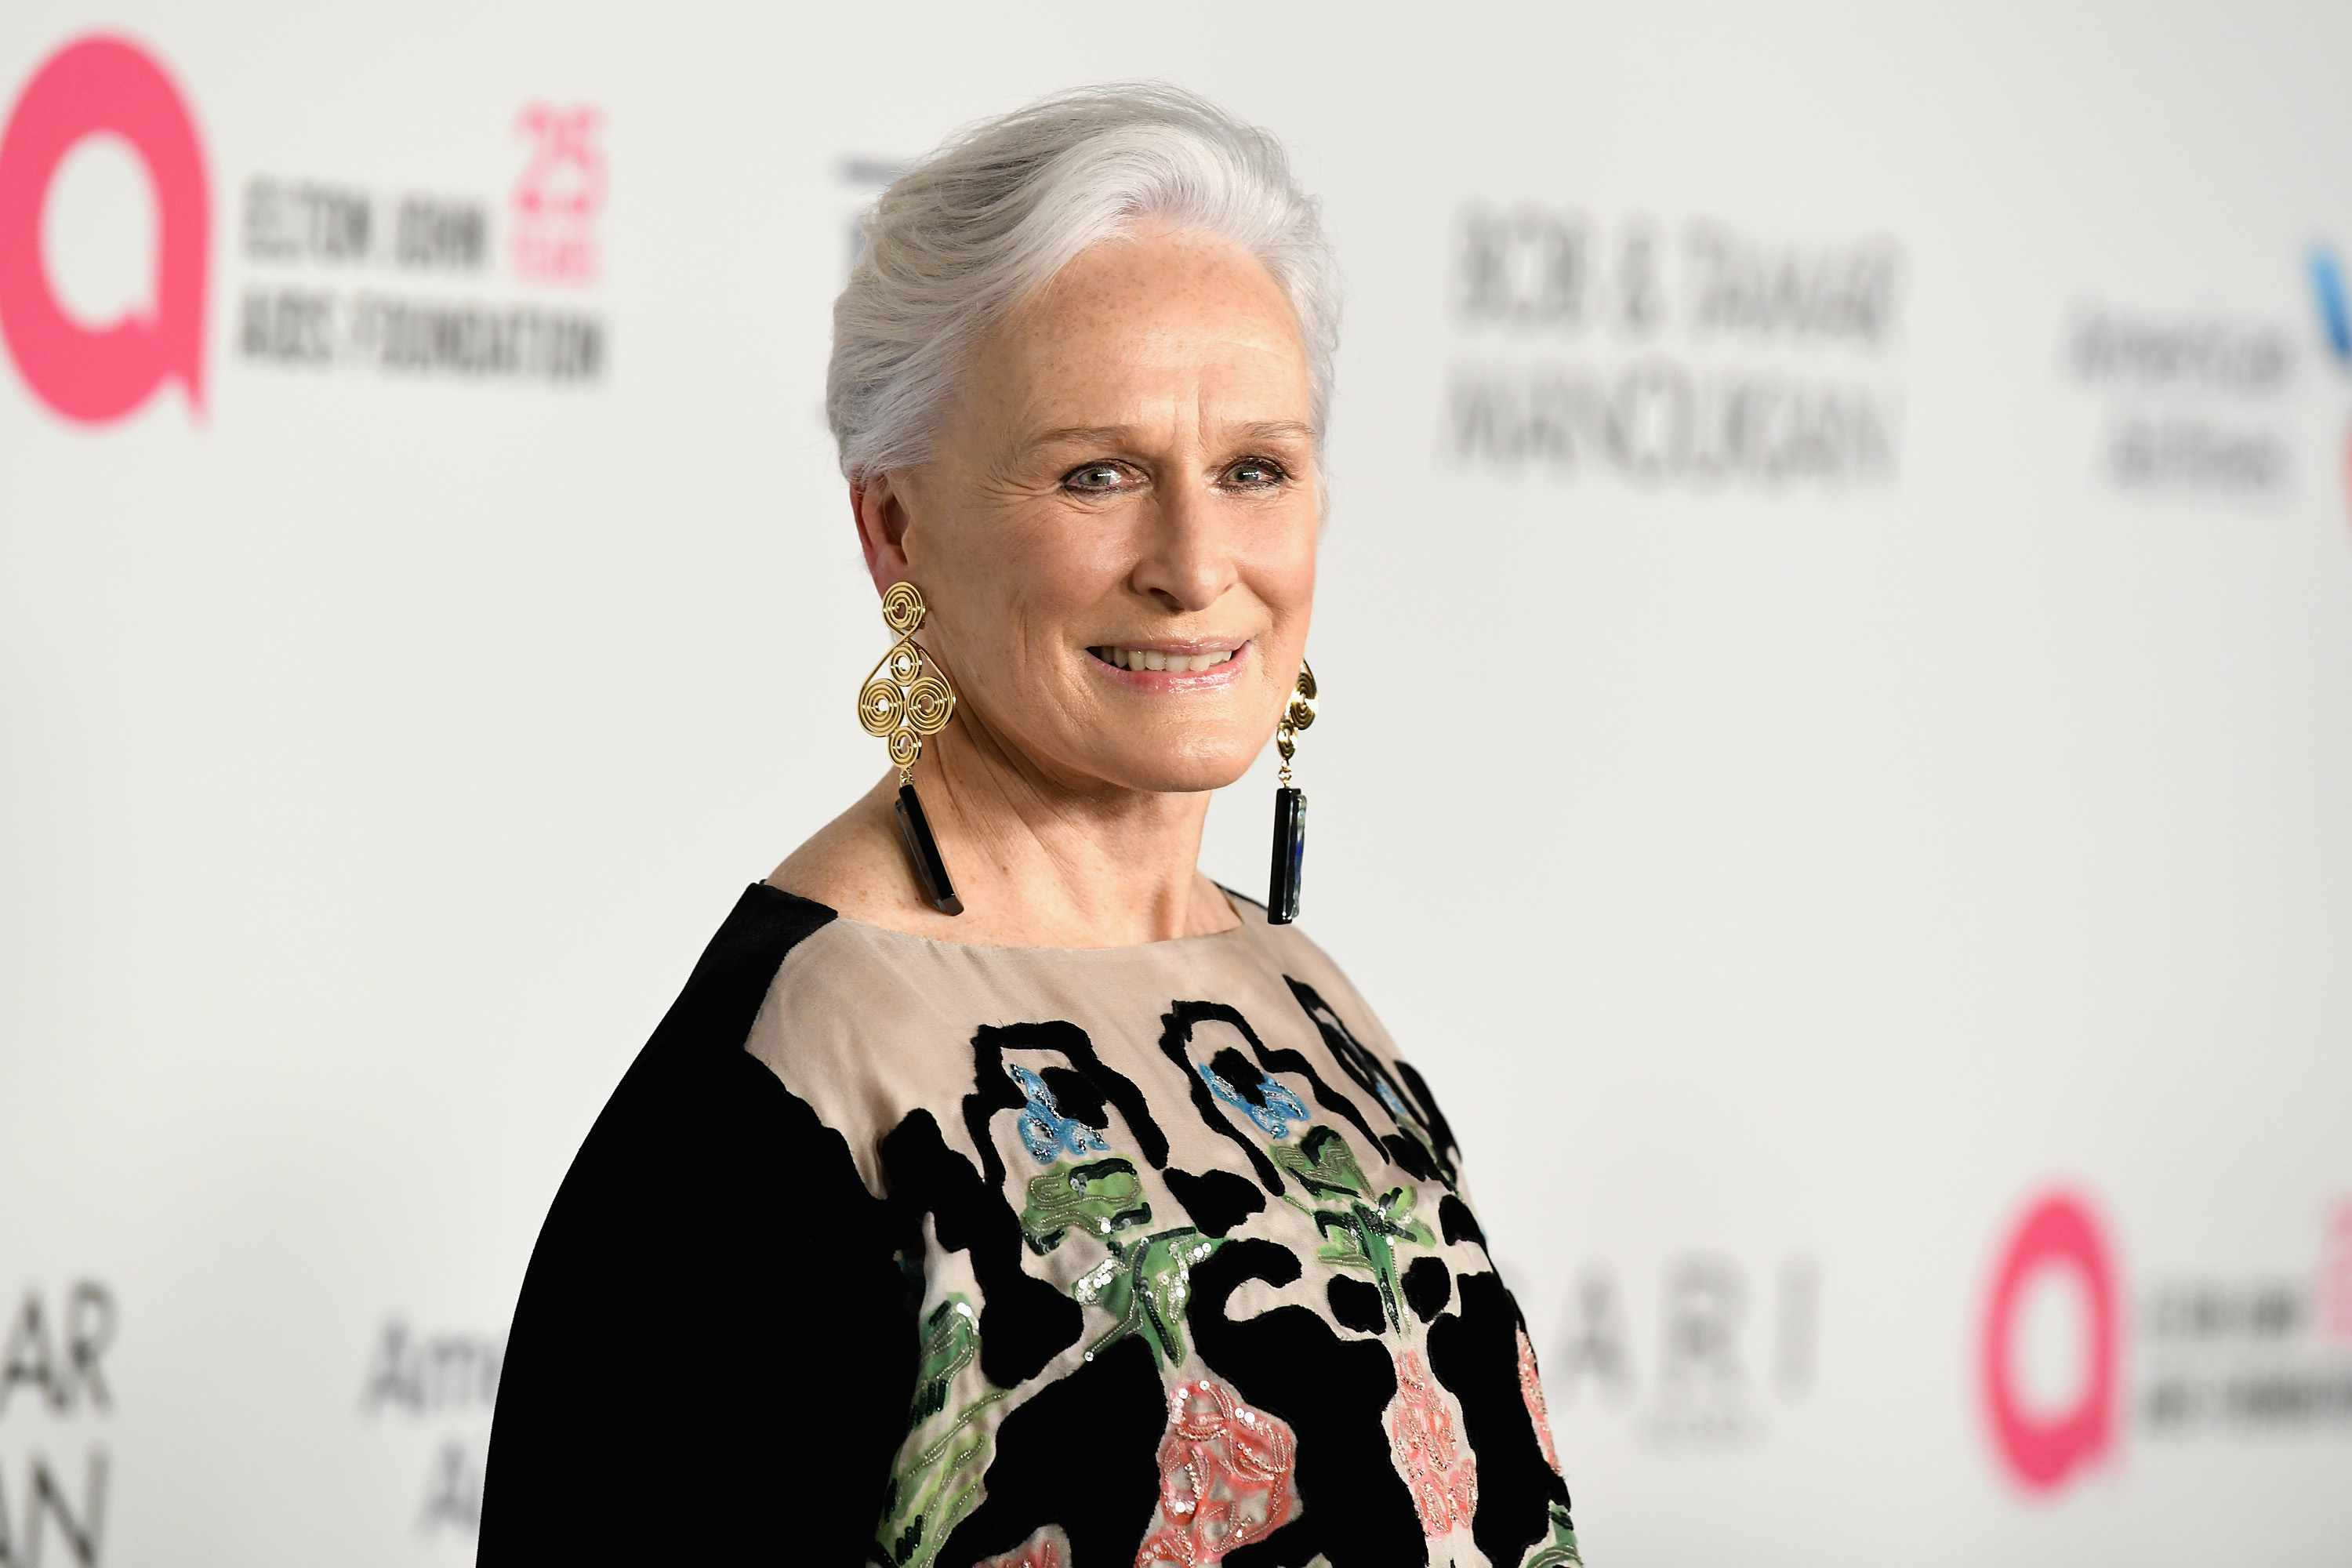 NEW YORK, NY - NOVEMBER 07: Glenn Close attends the Elton John AIDS Foundation's Annual Fall Gala with Cocktails By Clase Azul Tequila at Cathedral of St. John the Divine on November 7, 2017 in New York City.  (Photo by Slaven Vlasic/Getty Images for Clase Azul)